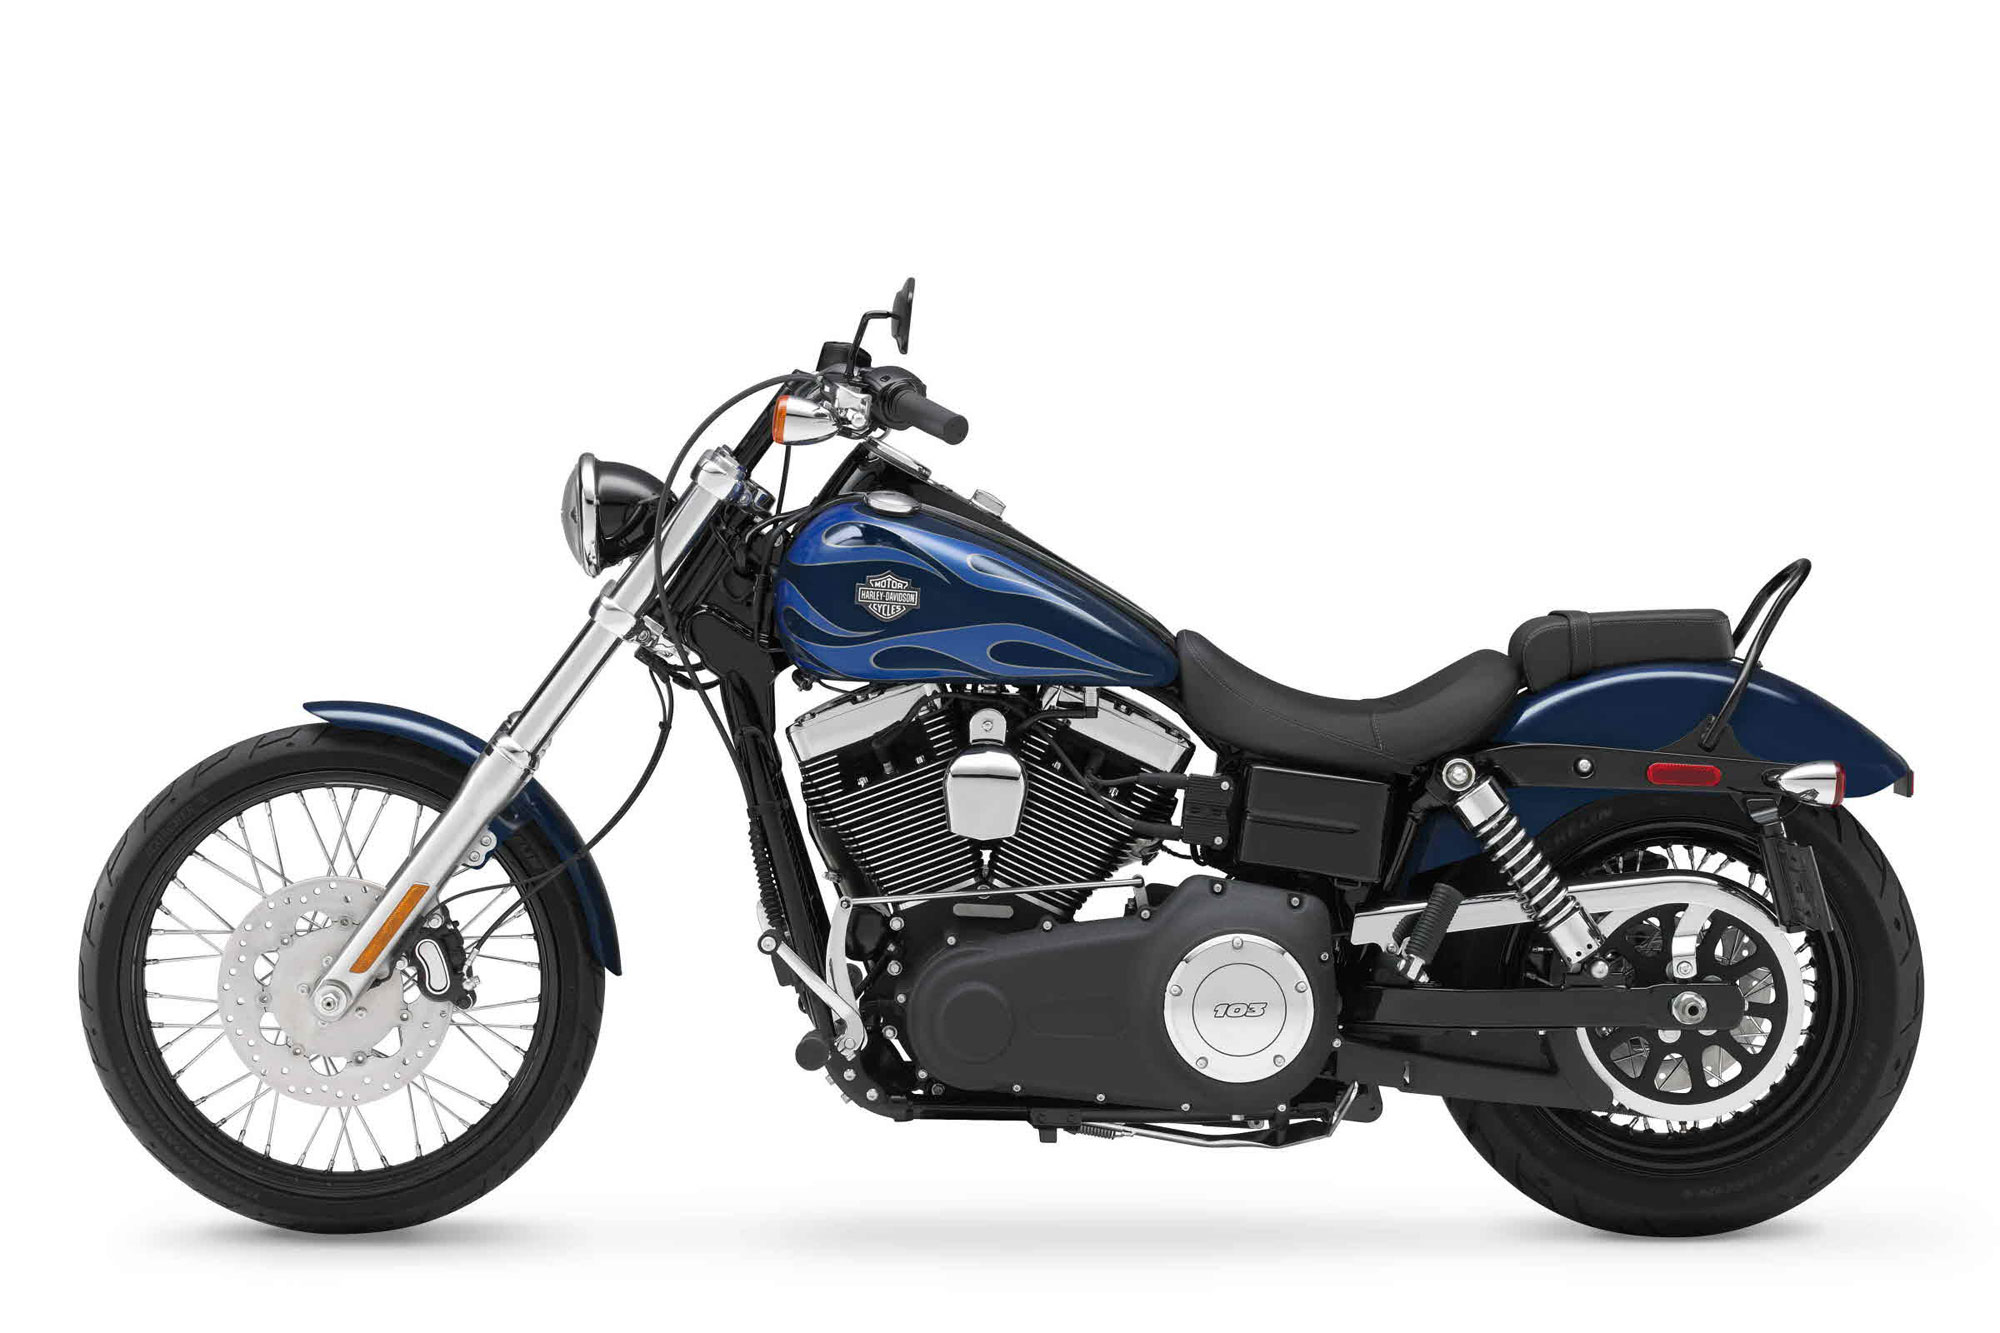 1994 Wide Glide Wiring Diagram | Wiring Liry Harley Davidson Dyna Wiring Diagram on